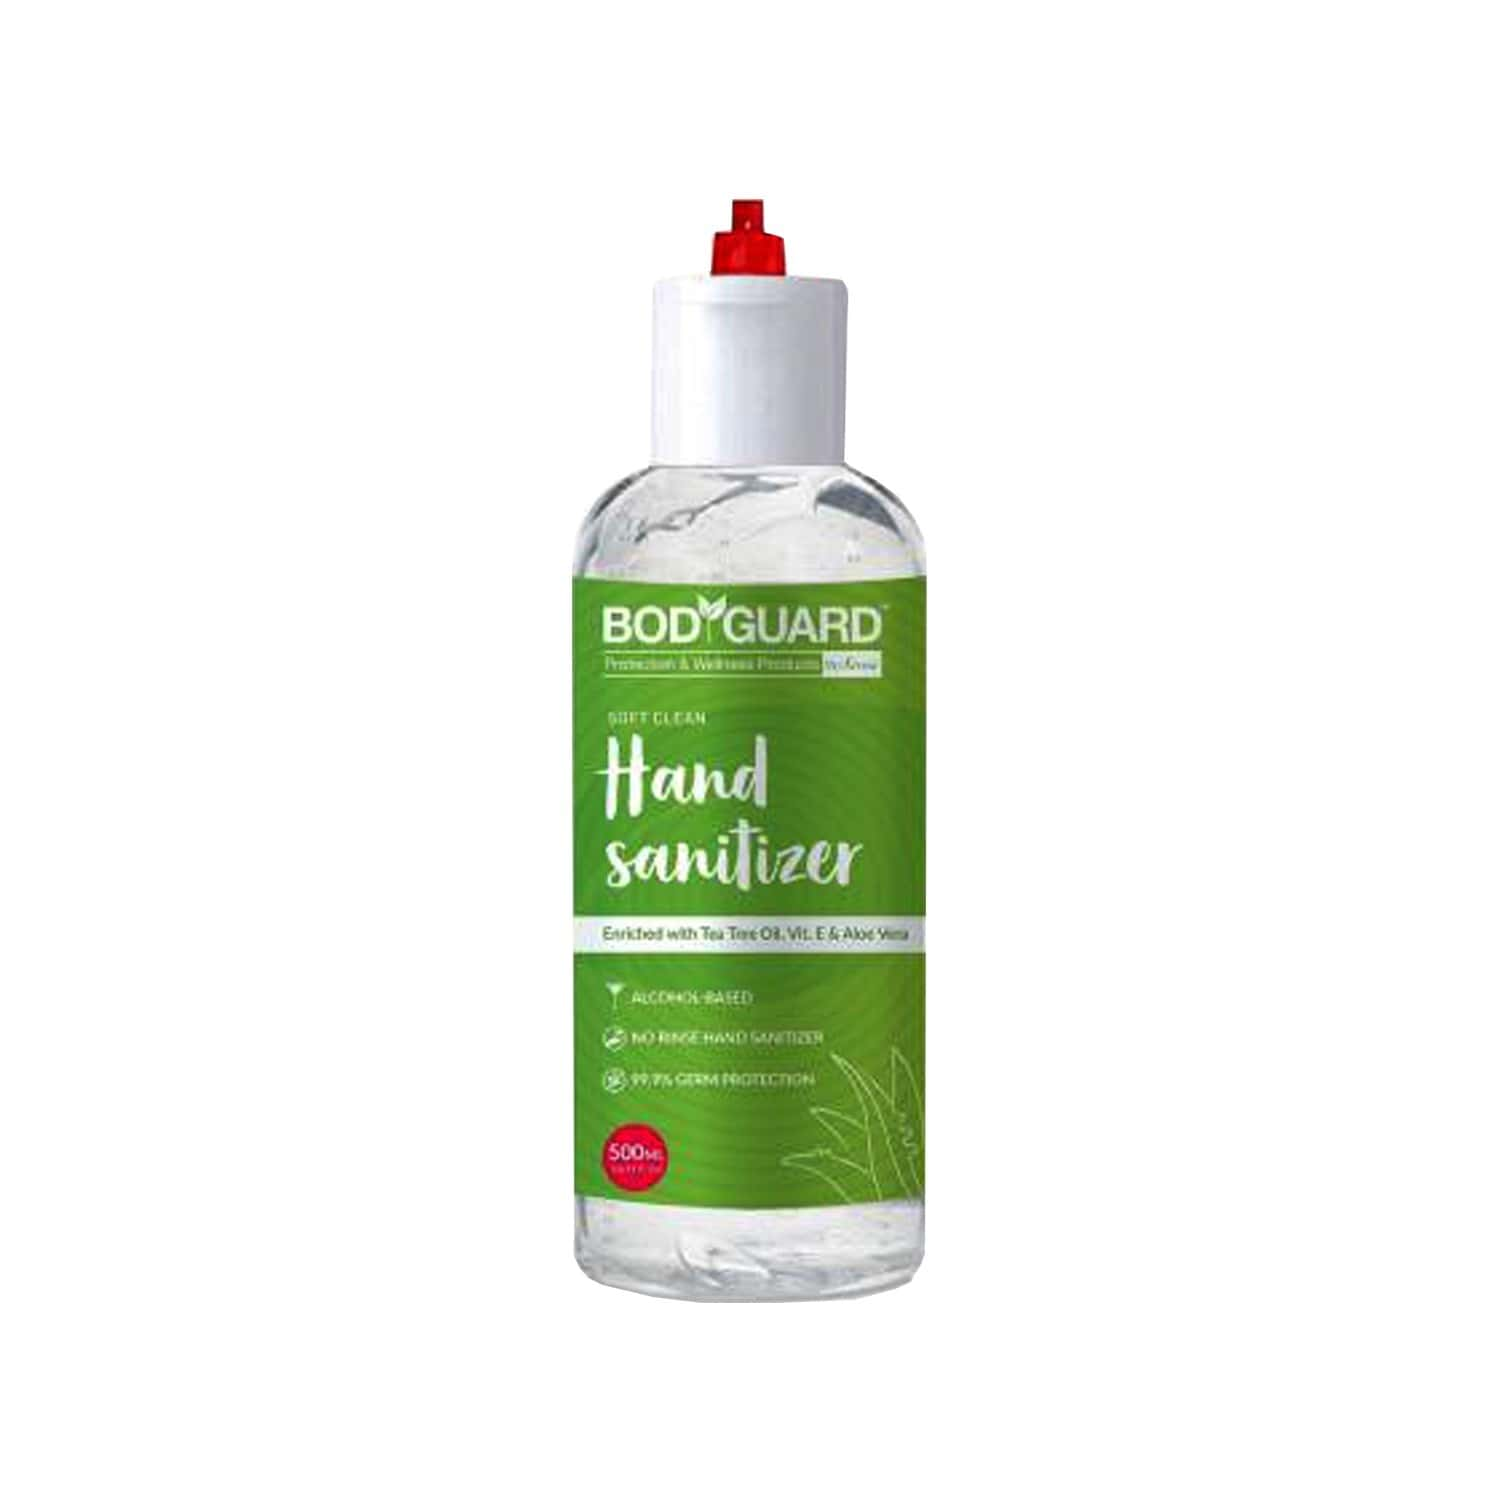 Bodyguard Alcohol Based Hand Sanitizer With Enriched Tea Tree Oil, Vitamin E And Aloe Vera - 500ml